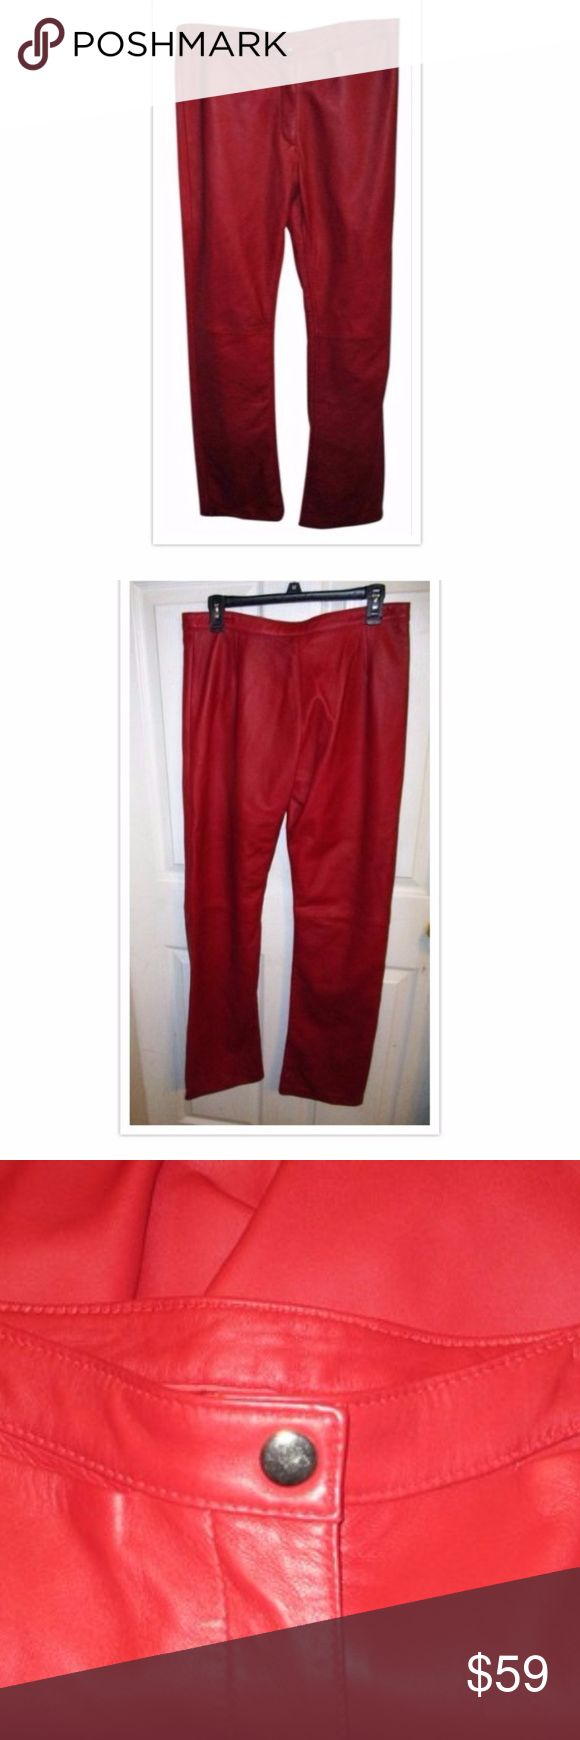 Saddle Shop Red Leather Pants Jeans NEW SZ 32 These are stunning.. no tag but never worn... Red genuine leather pants; jeans..no back pockets.. Flat front.. Waist measures 34 inches and inseam is 33 inches.. can be hemmed.. I bought these from a closing shop most brands were on the pan but this one did not..  SIze is a 32... which is a US 12 100% Genuine Leather Jeans Straight Leg